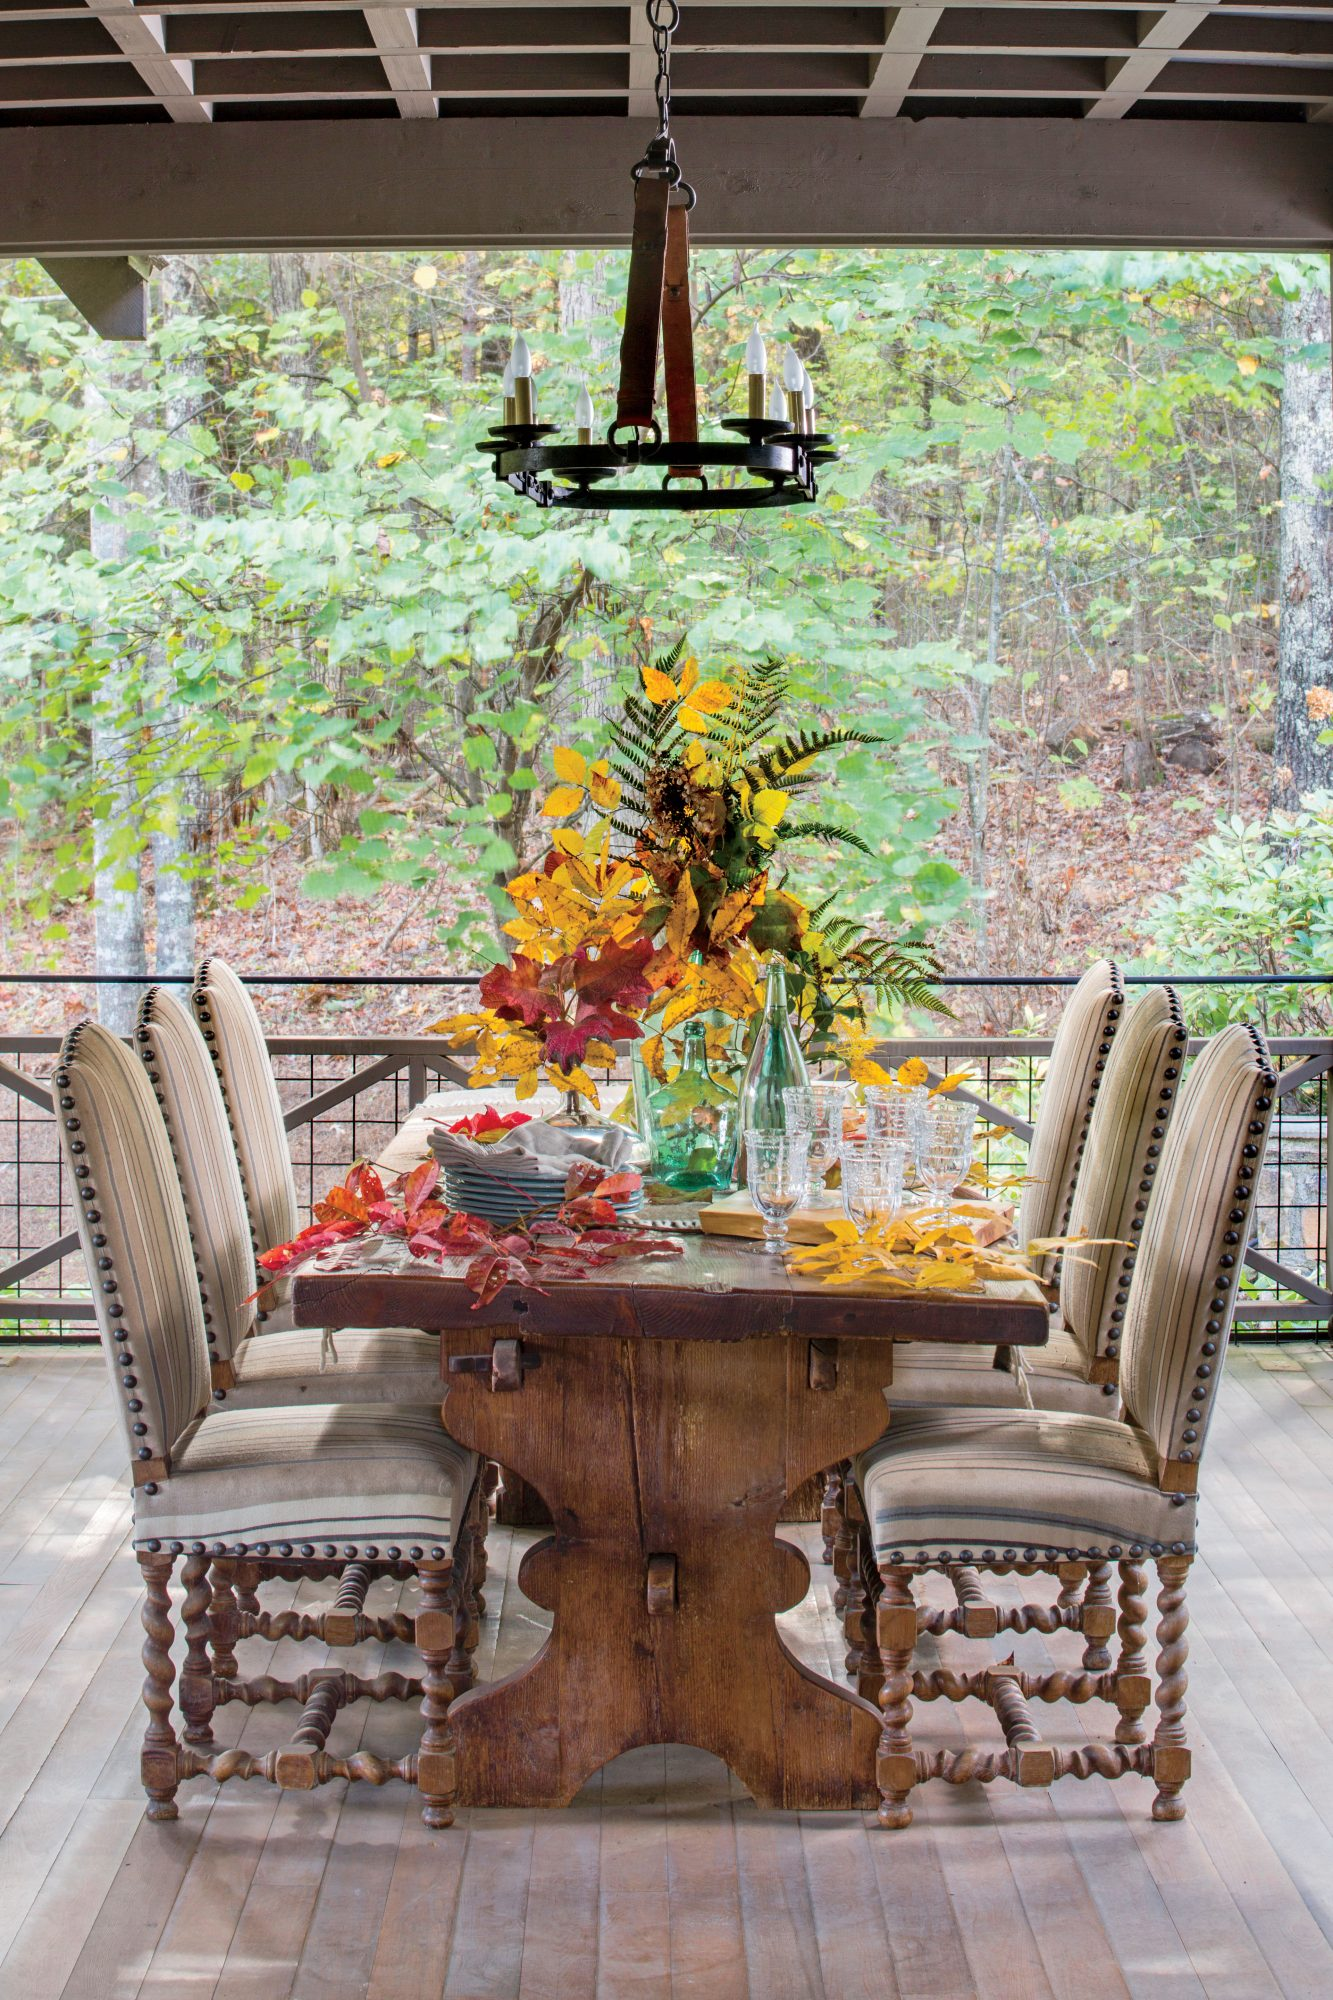 Sara Hedstrom Pinnell Walland, TN Cabin Outdoor Dining Room on Porch